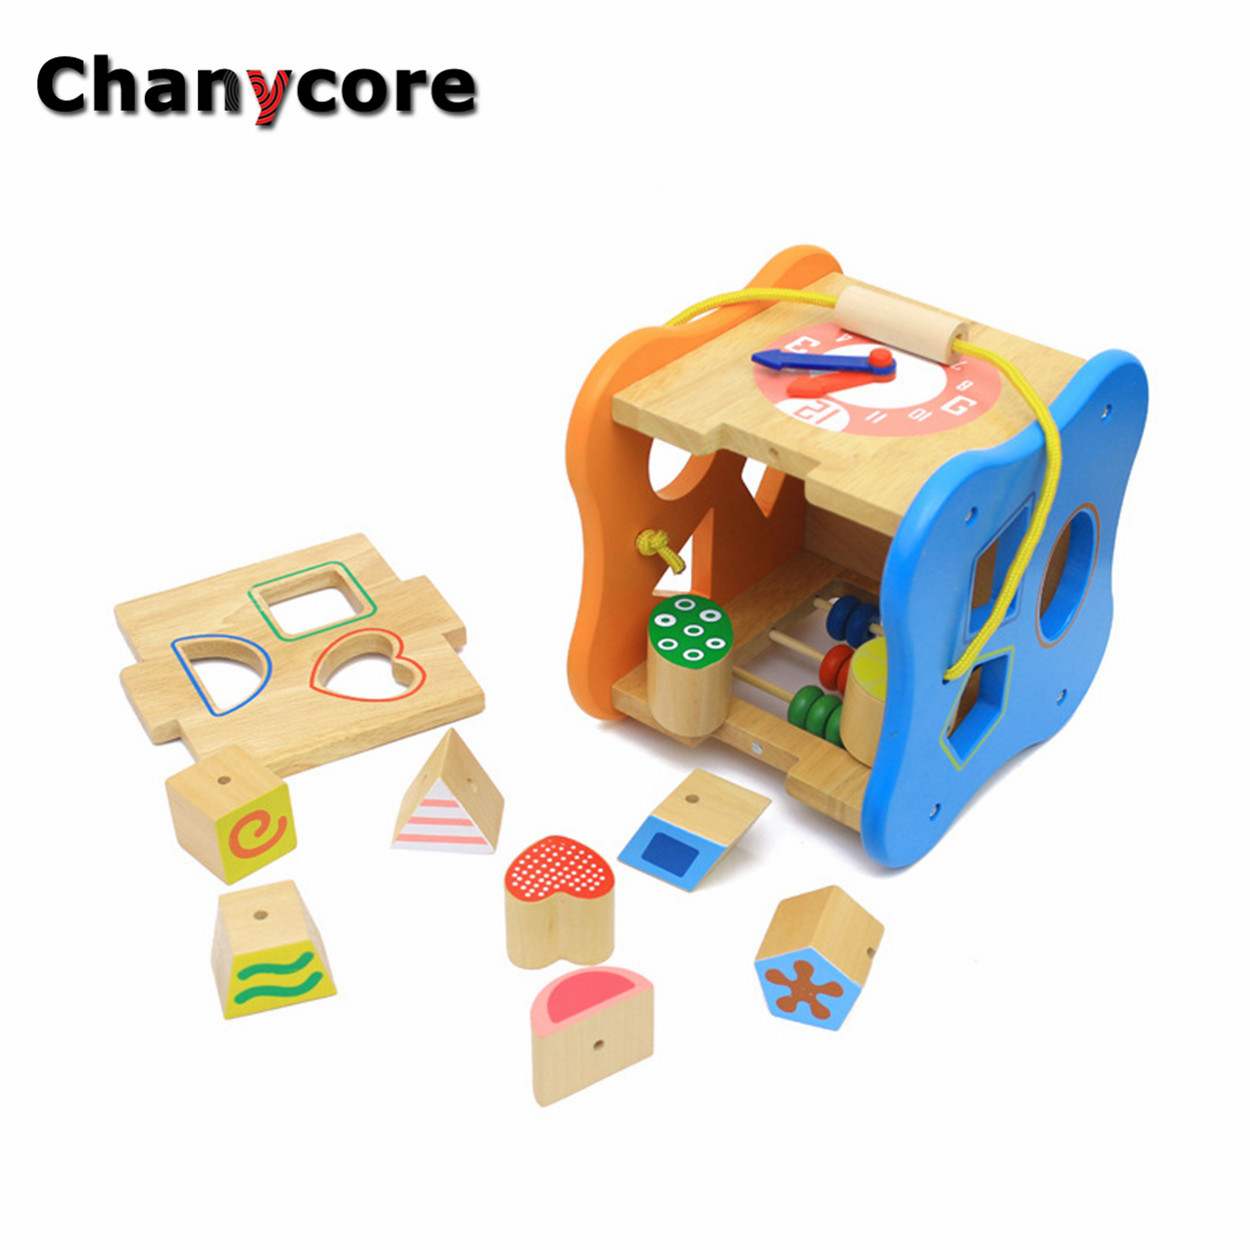 Worksheet Learning Clocks Online compare prices on china toy clock online shoppingbuy low price baby learning educational wooden toys geometric shape blocks box beads sorting matching ww montessori kids